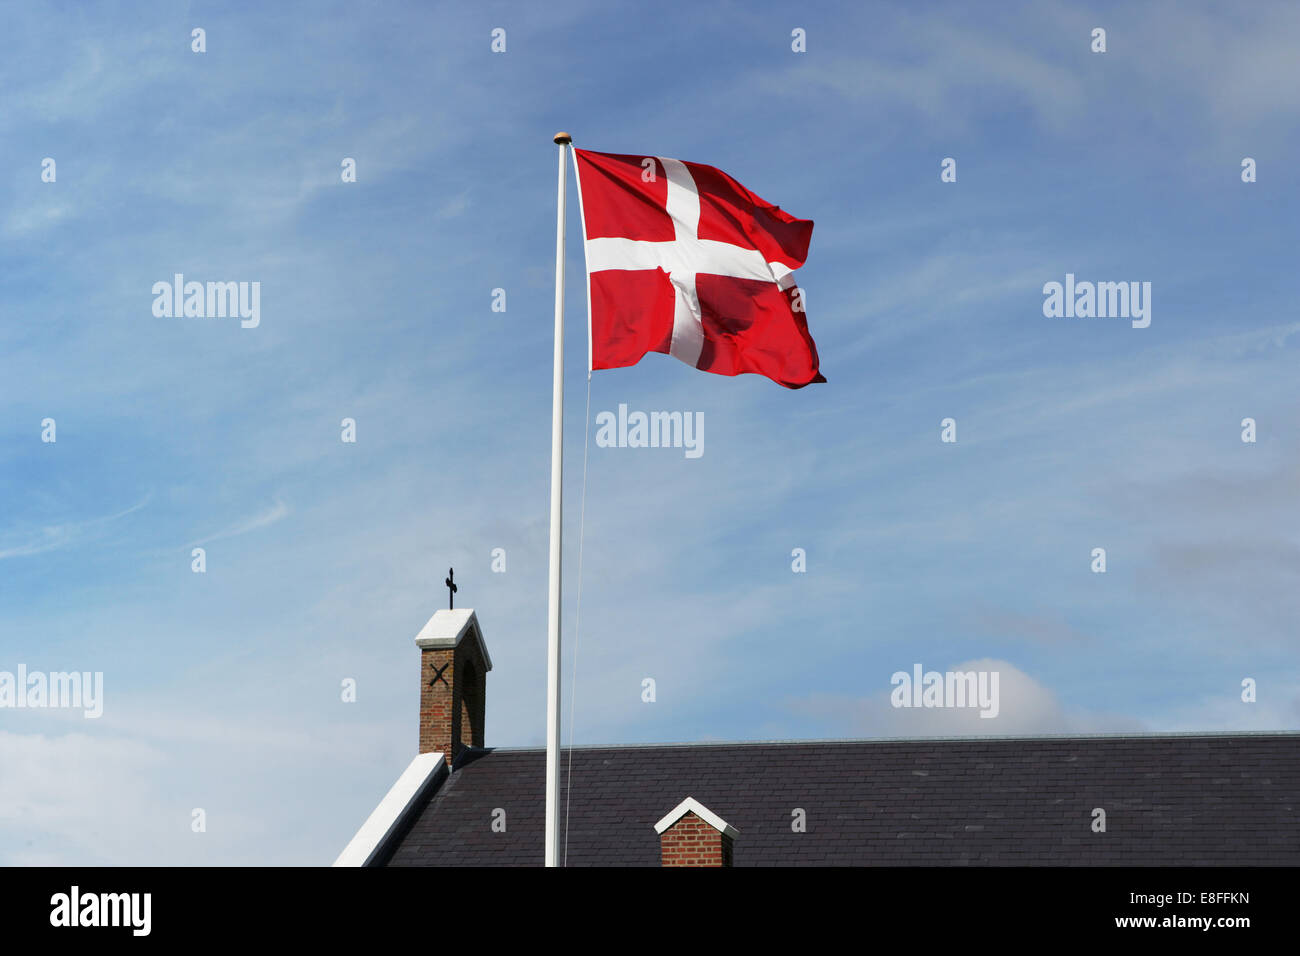 Danish flag and church against sky, Sonderho, Fanoe, Denmark - Stock Image